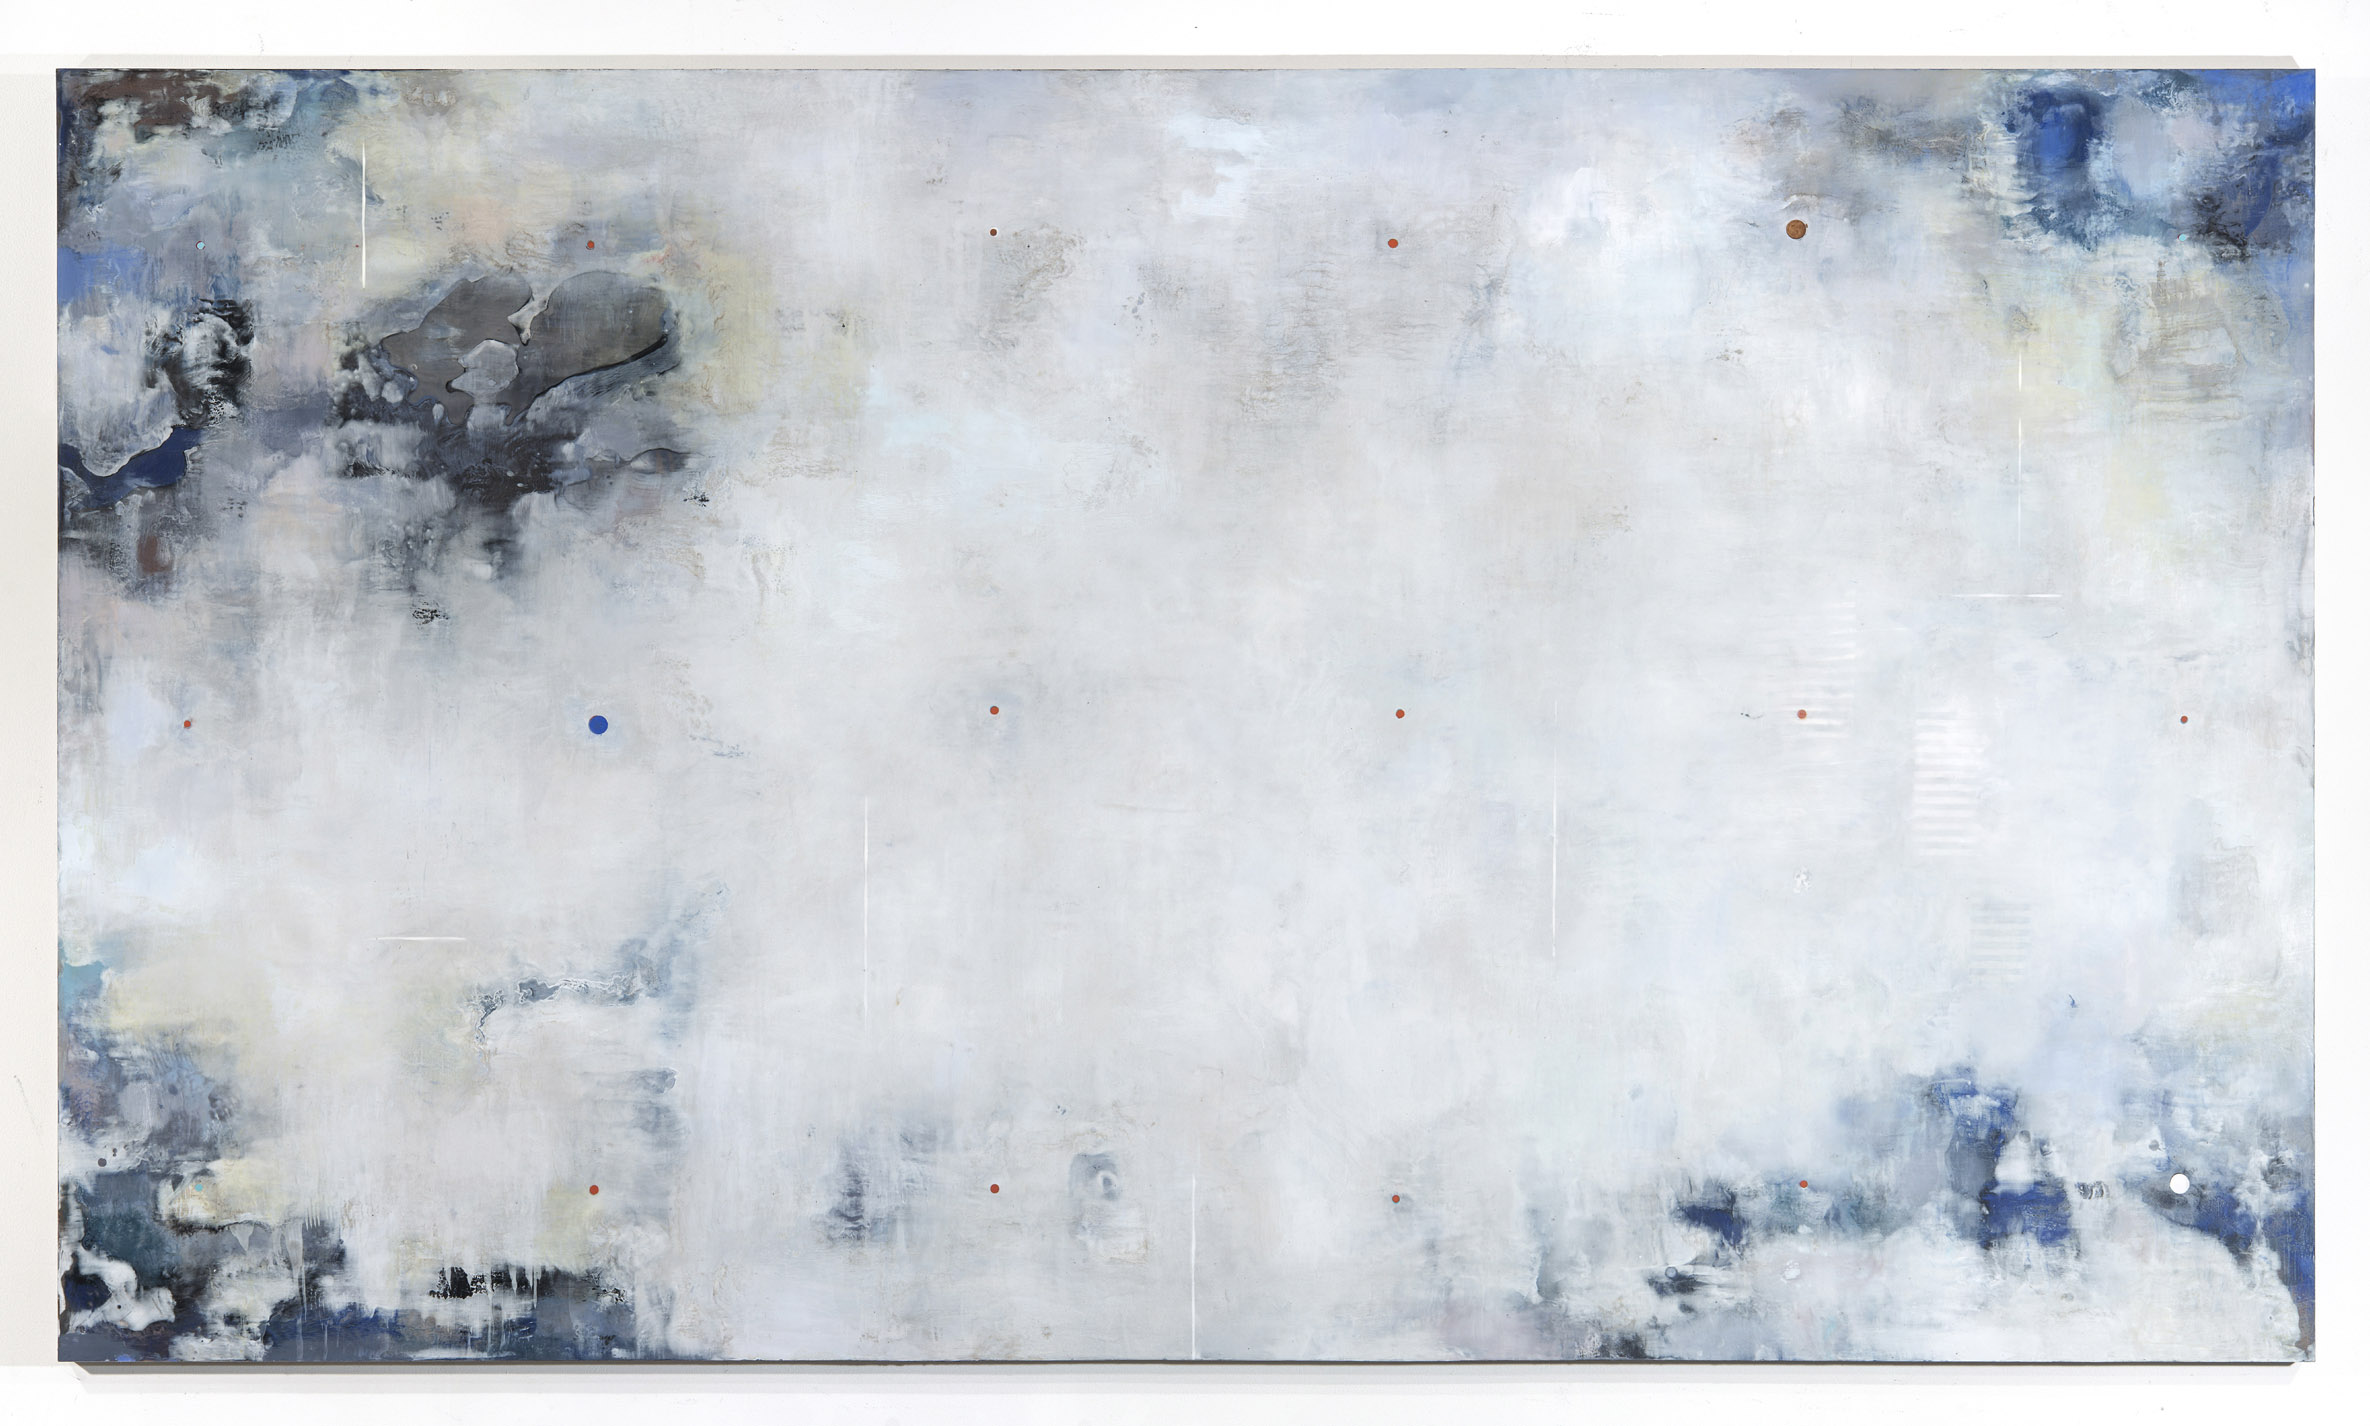 Dust Stories (Echoes), 2015. Wax, resin and pigments on birch panel, 48 x 84 in.